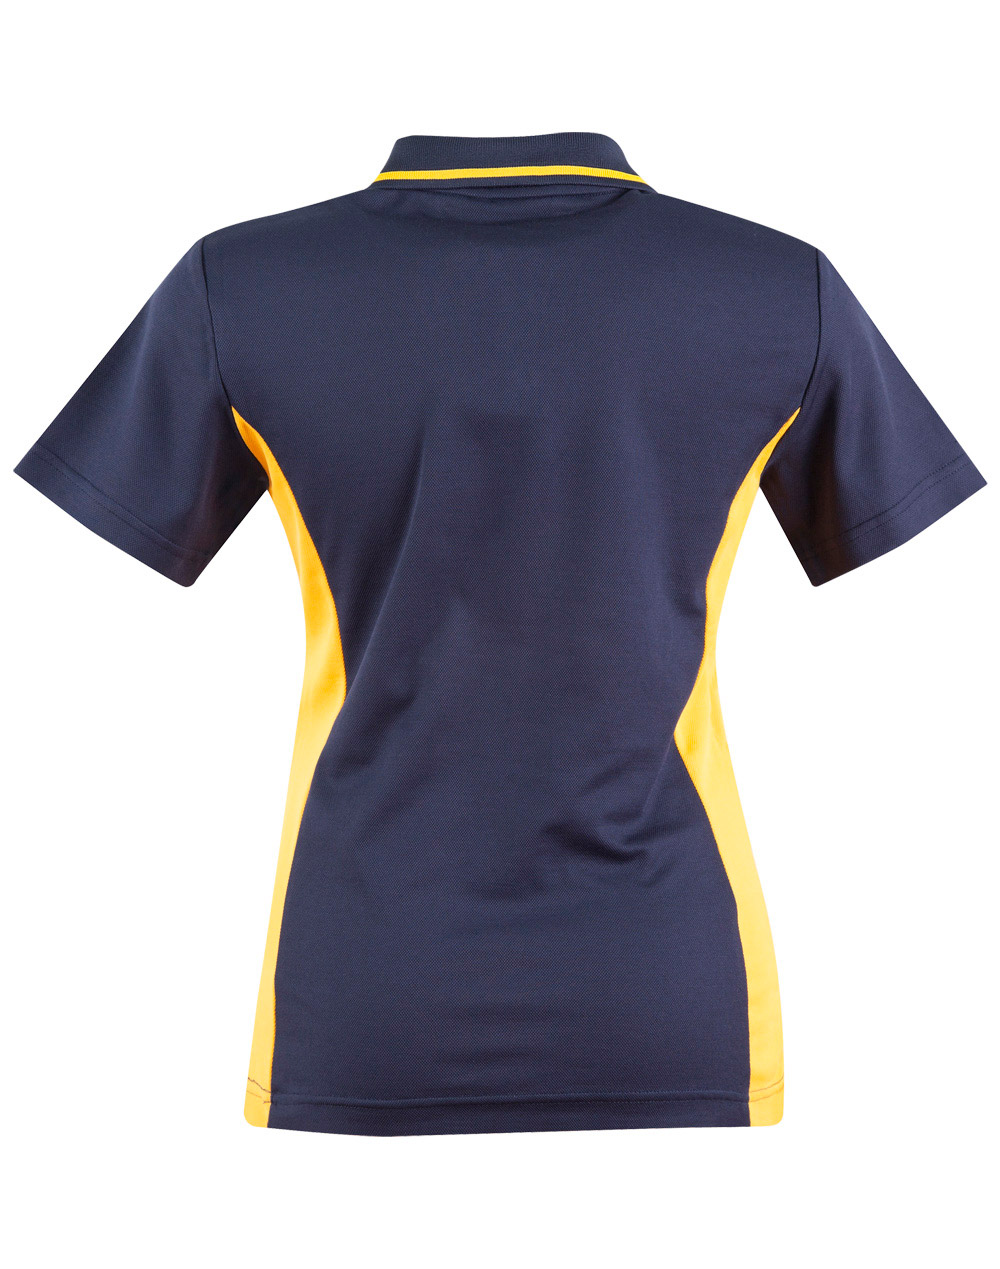 https://s3-ap-southeast-1.amazonaws.com/ws-imgs/POLOSHIRTS/PS74_NavyGold_Back.jpg